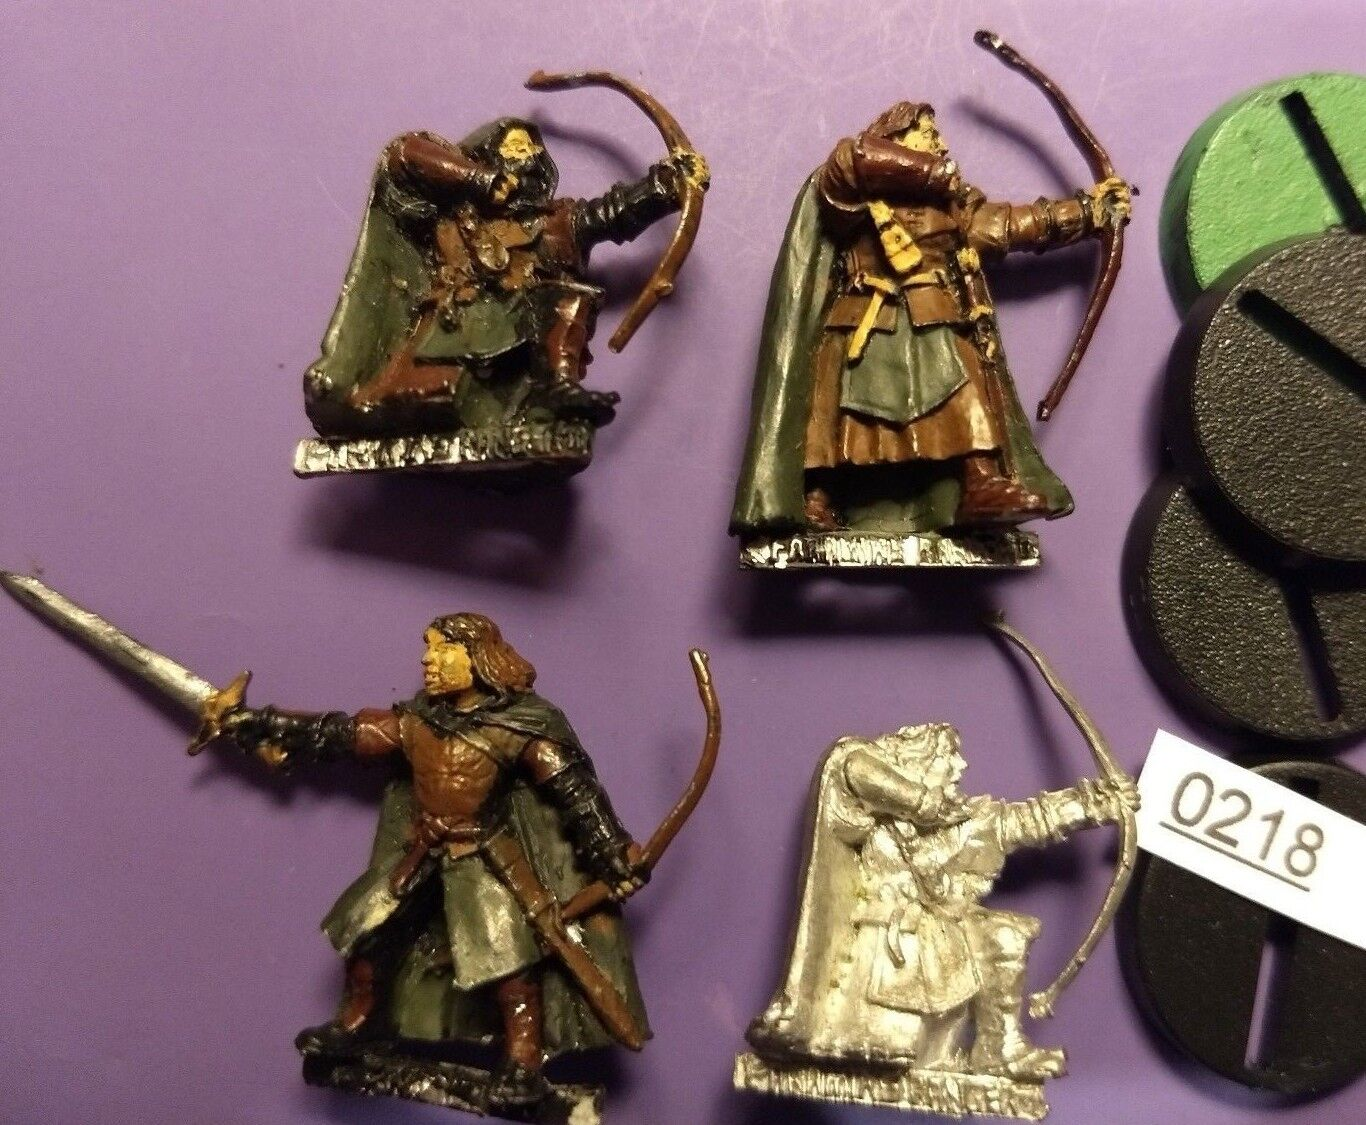 Groupe de faramirs Rangers-Lords of the Rings Warhammer-Rangers of ithilien